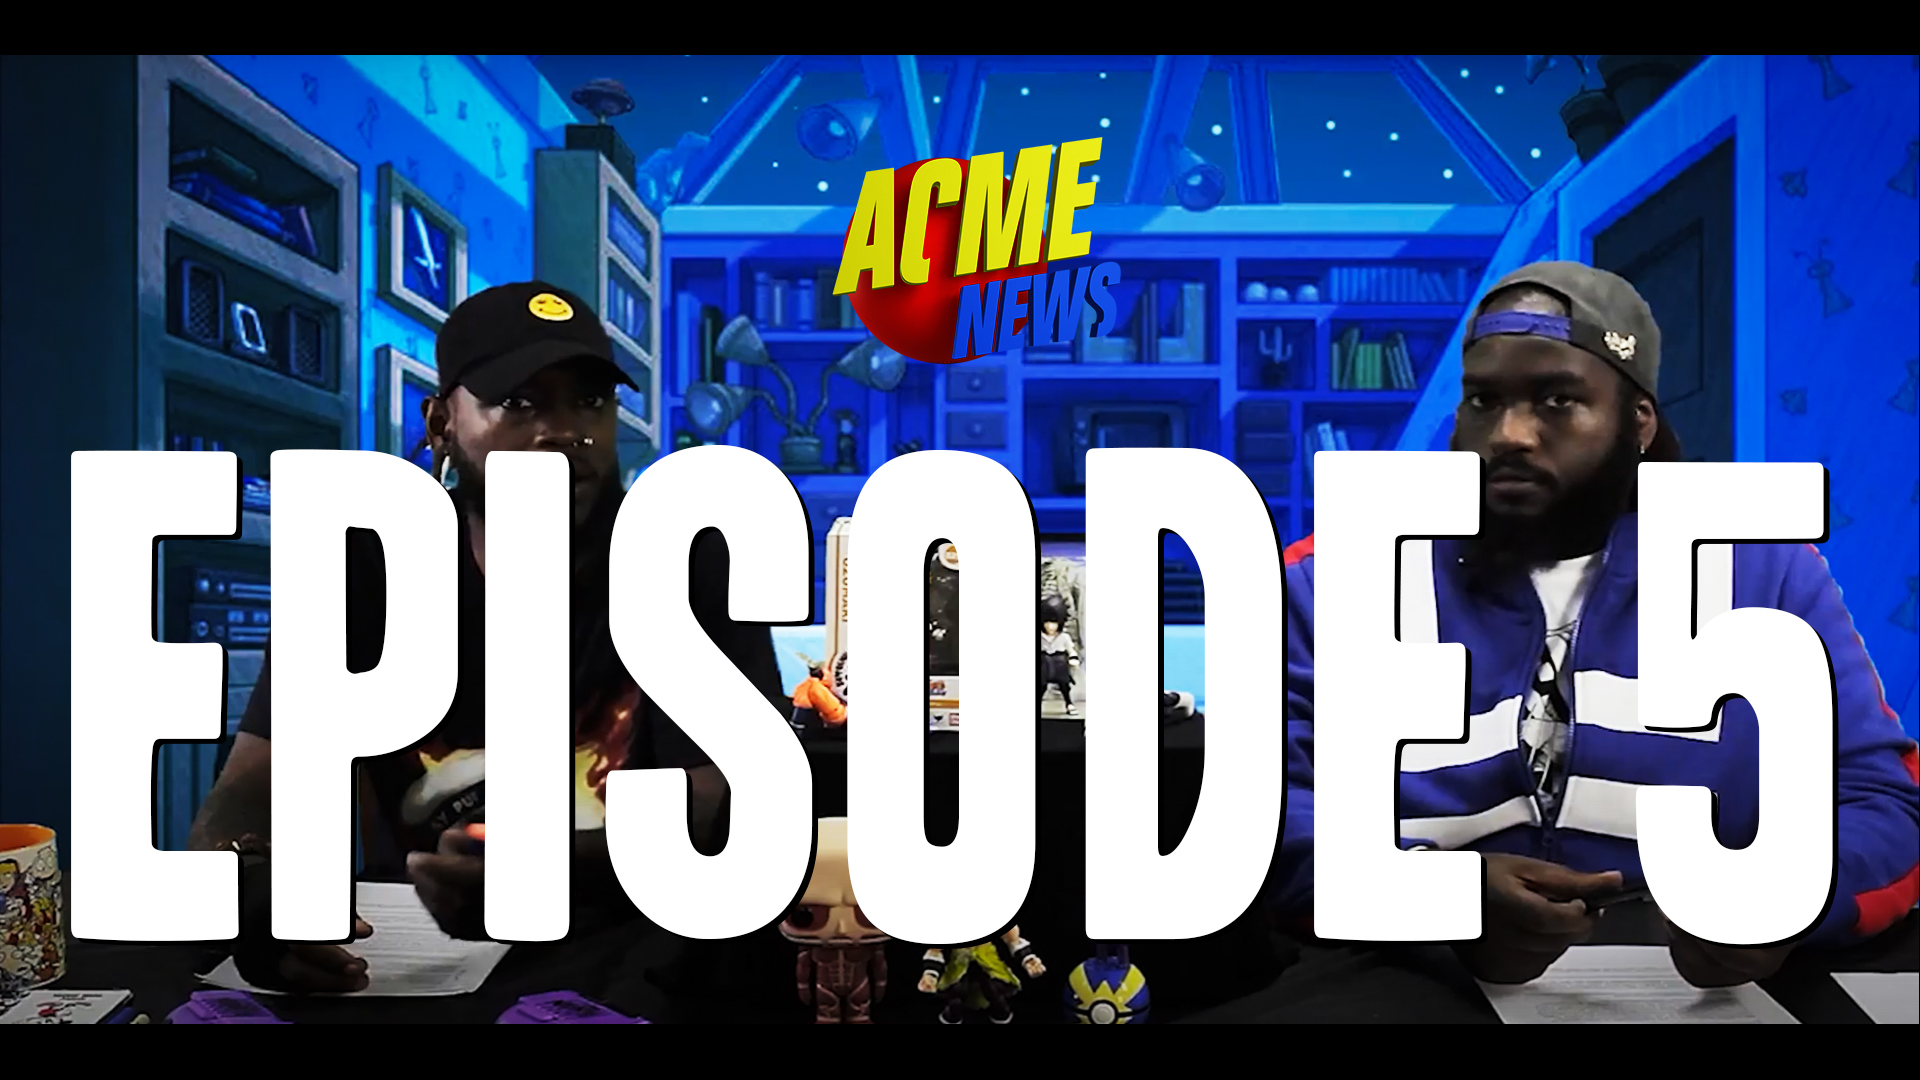 Acme News Season 1 Episode 5